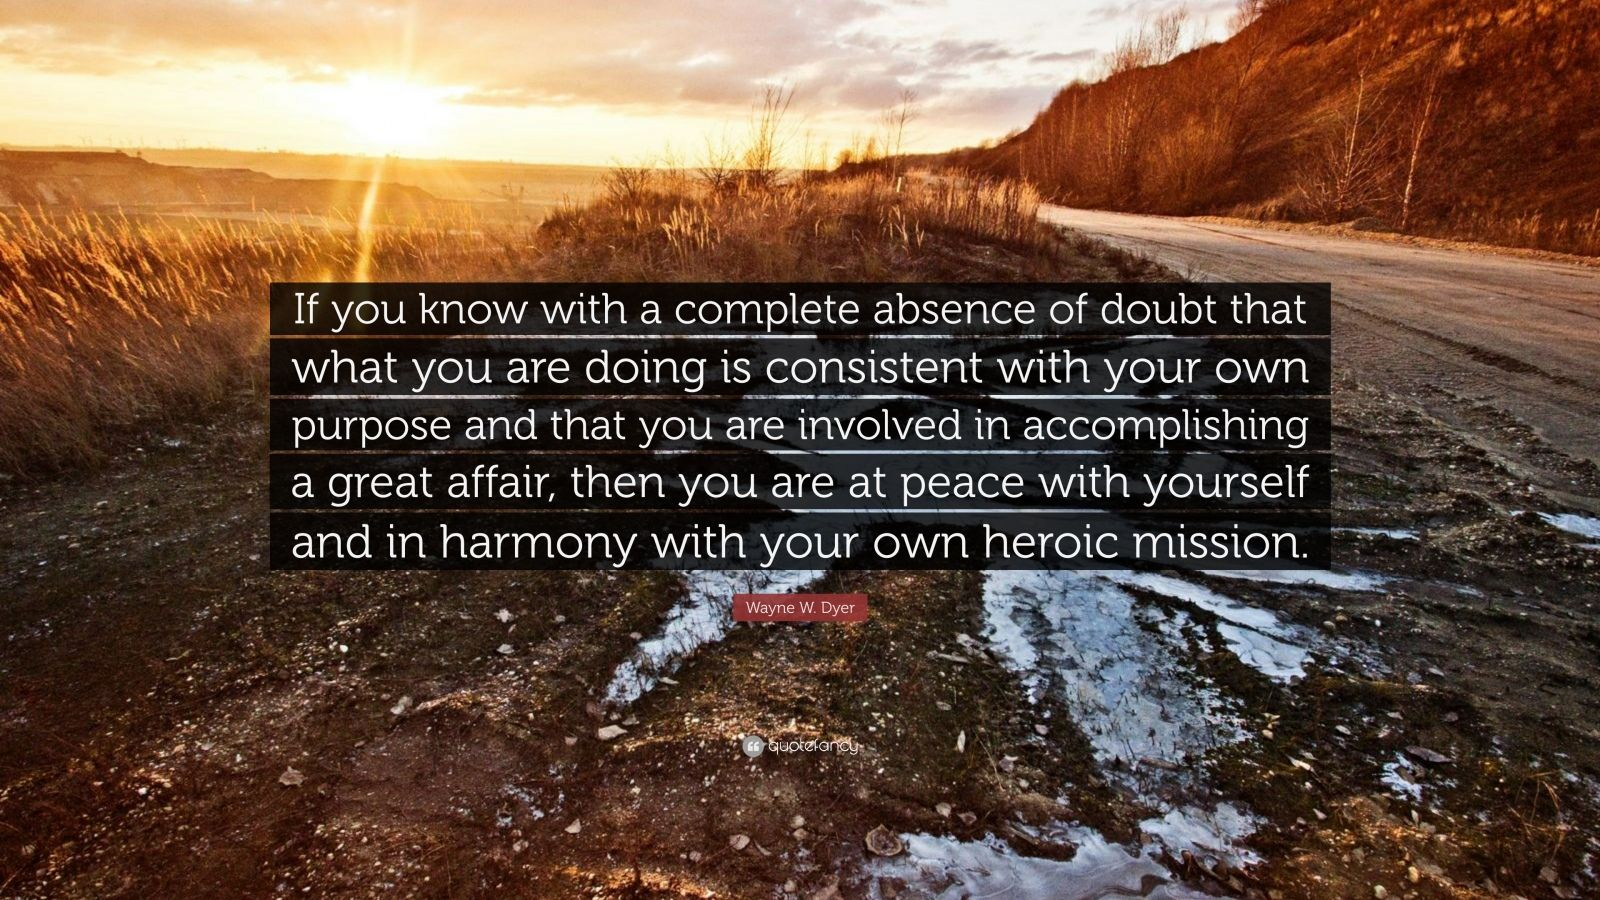 "Wayne W. Dyer Quote: ""If you know with a complete absence of doubt that what you are doing is consistent with your own purpose and that you are involved in accomplishing a great affair, then you are at peace with yourself and in harmony with your own heroic mission."""